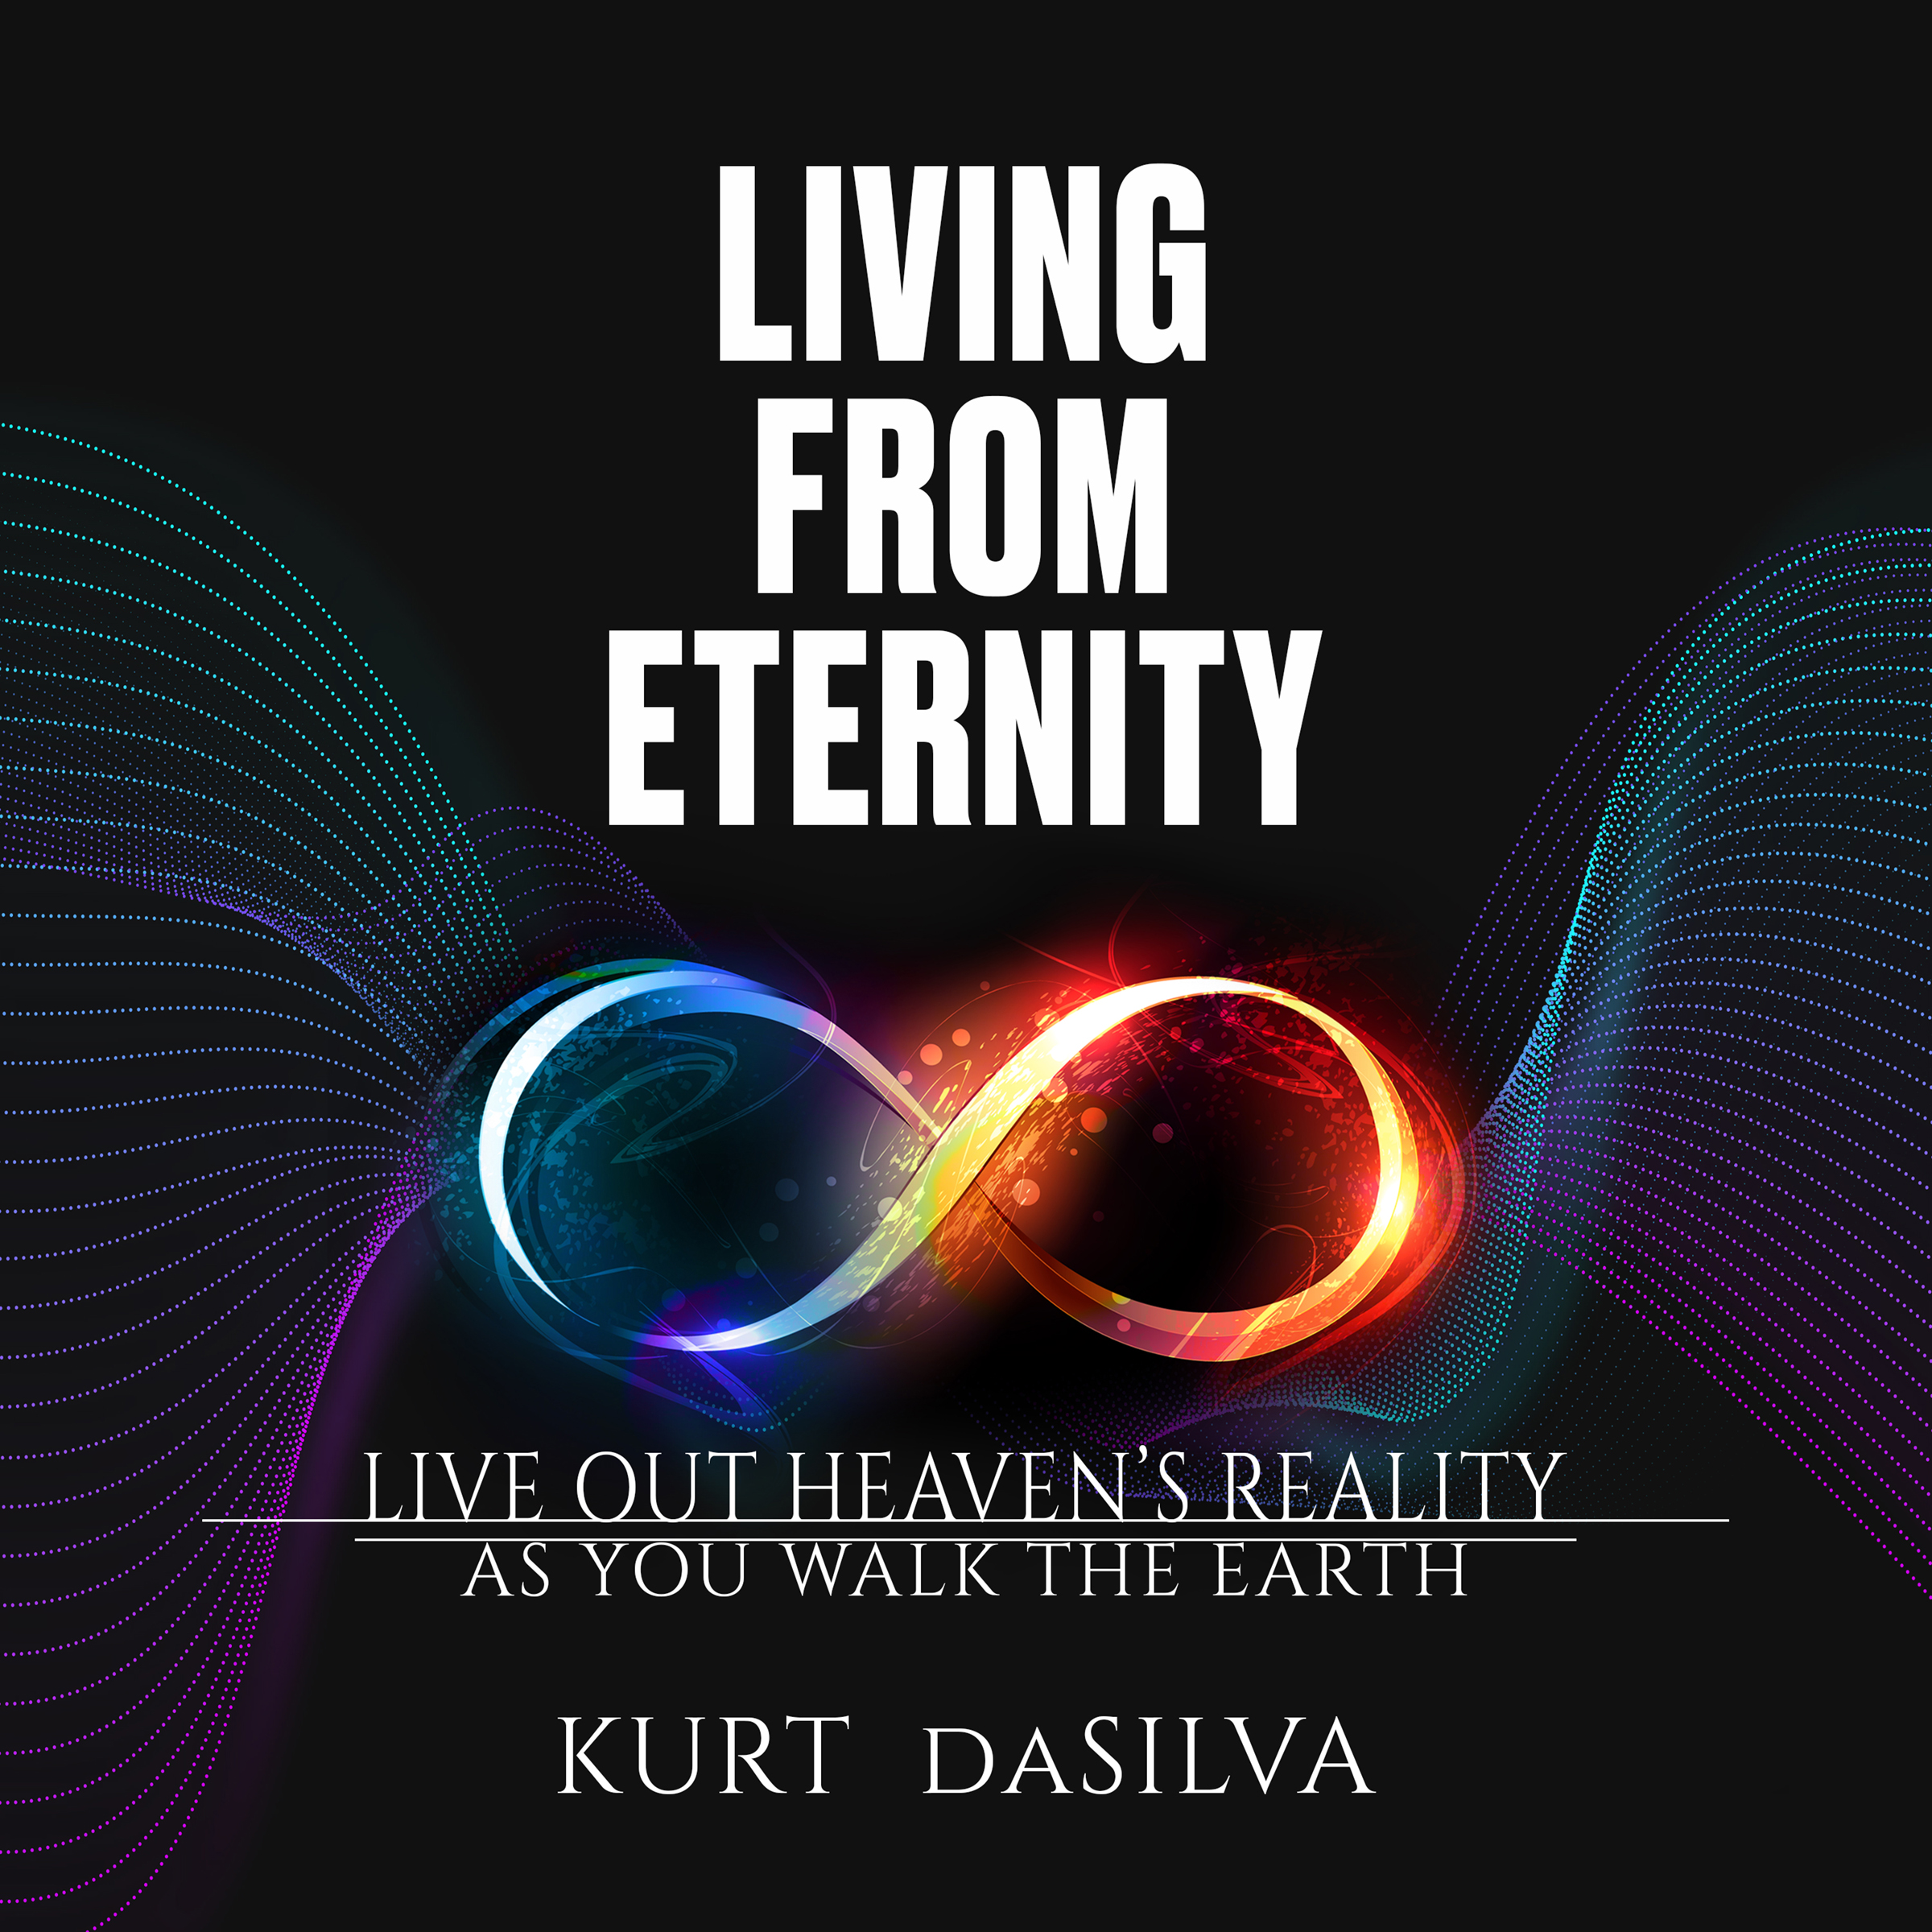 Living from Eternity cover image